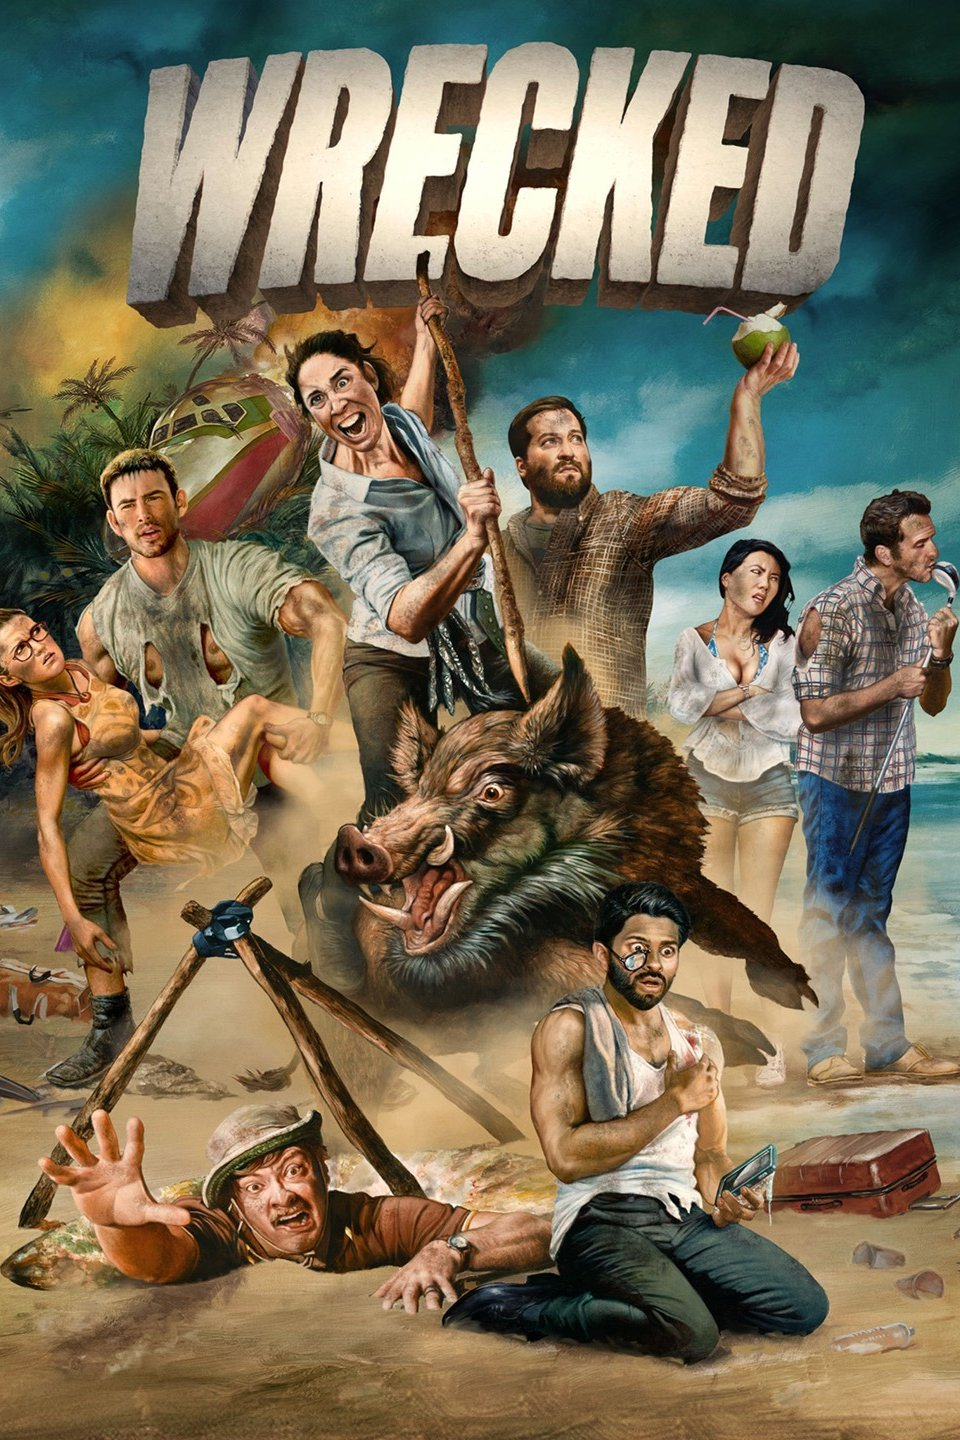 Wrecked Season 2 Episode 9 Download HDTV Micromkv